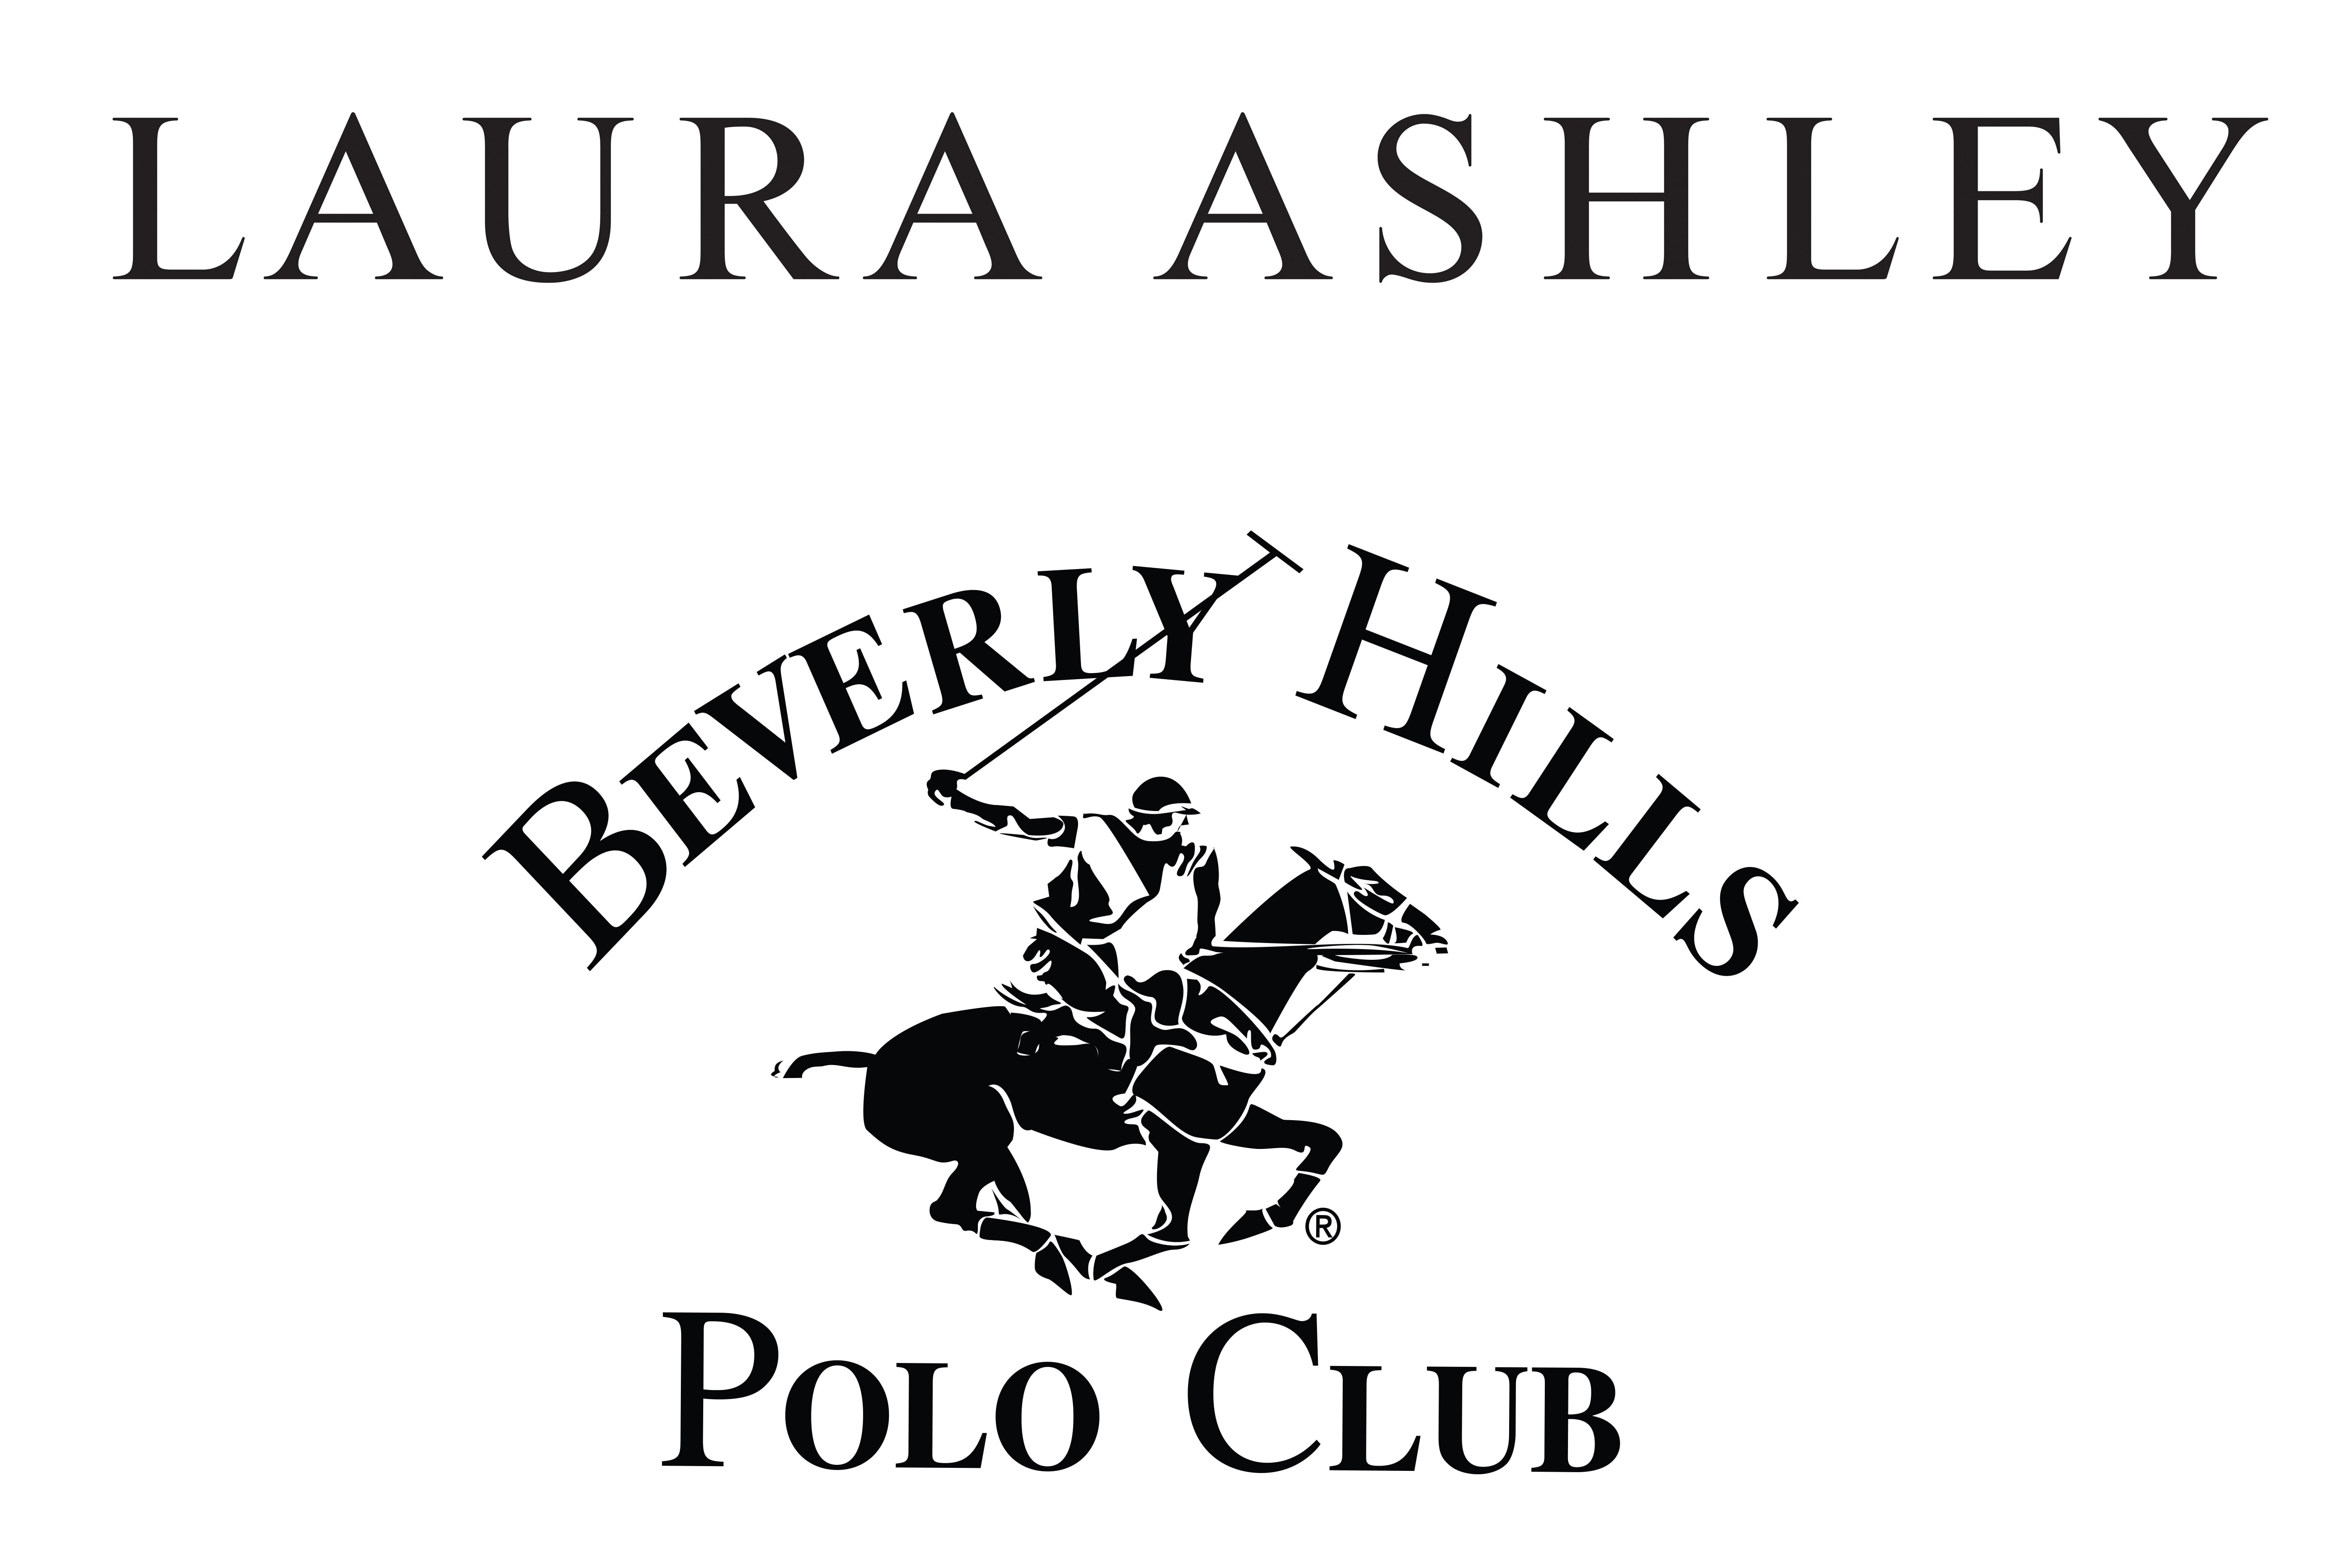 Laura Ashley - Bevery Hills Polo Club